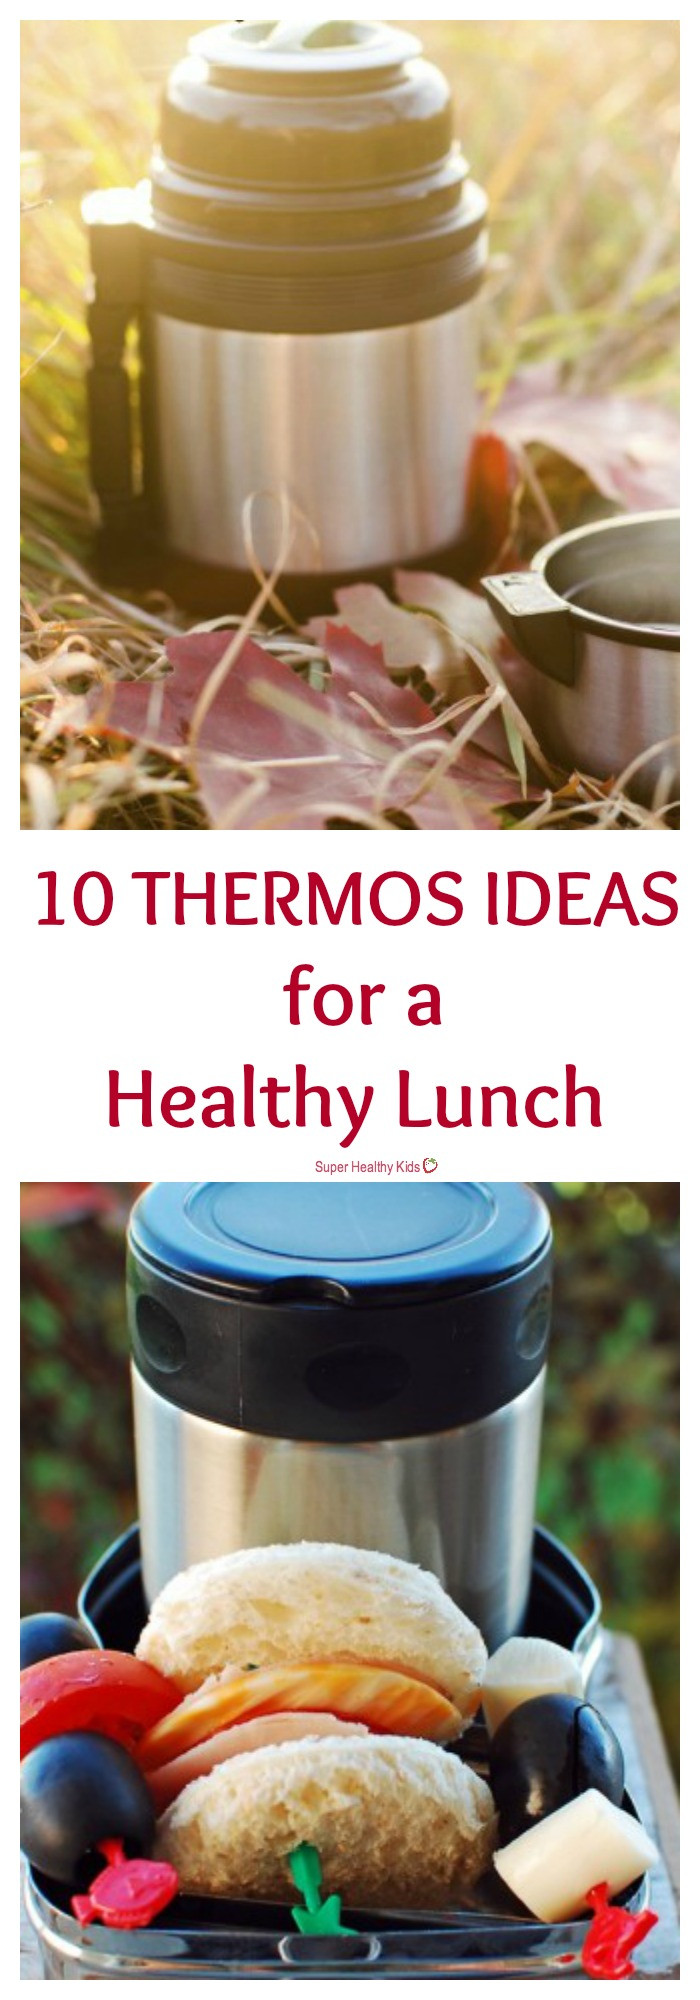 Warm Healthy Snacks  10 Thermos Ideas For A Healthy Lunch